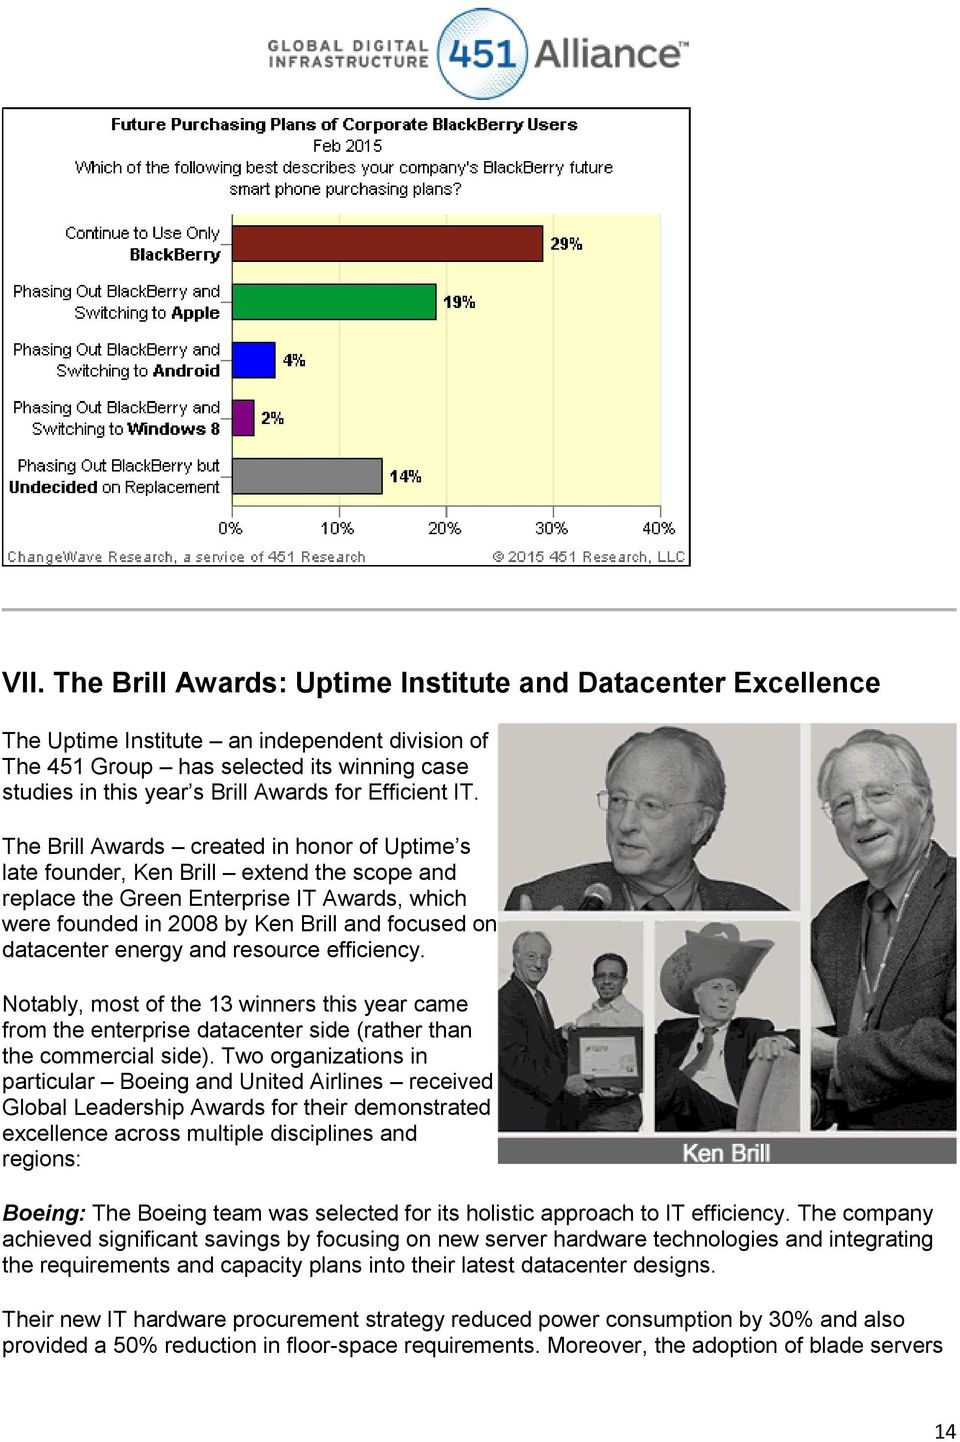 The Brill Awards created in honor of Uptime s late founder, Ken Brill extend the scope and replace the Green Enterprise IT Awards, which were founded in 2008 by Ken Brill and focused on datacenter